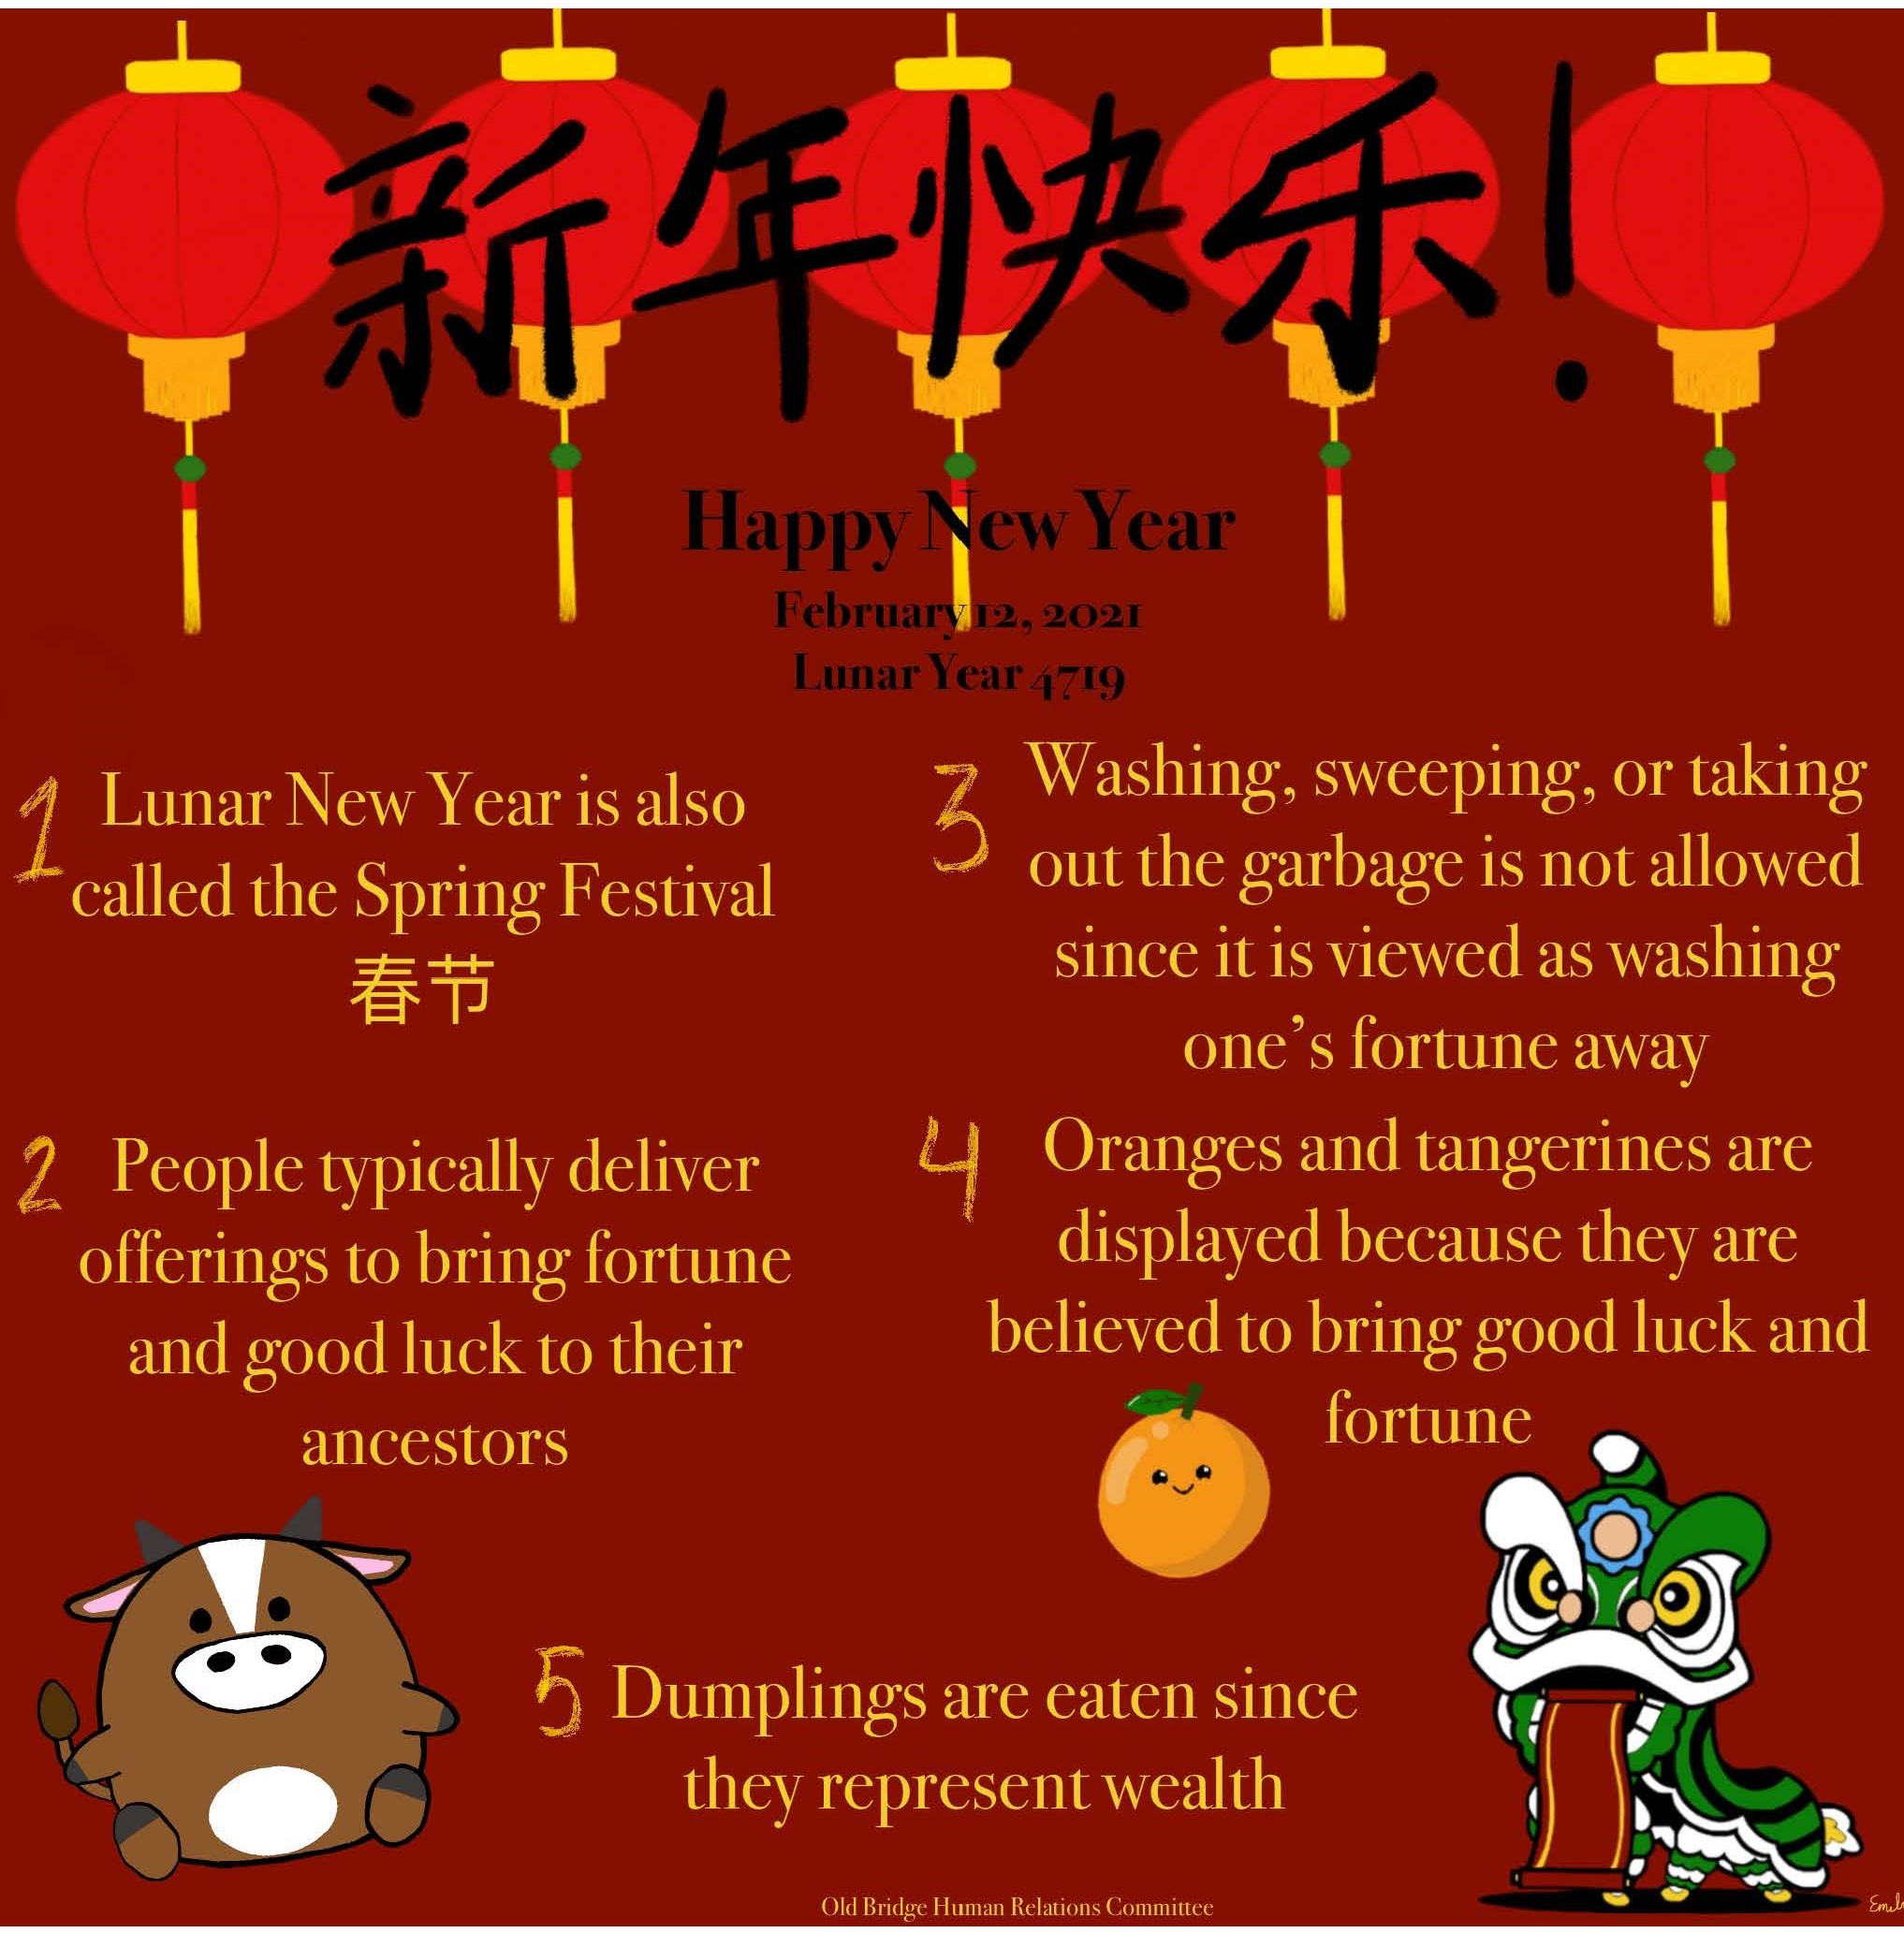 Graphic depicting lunar new year 2021